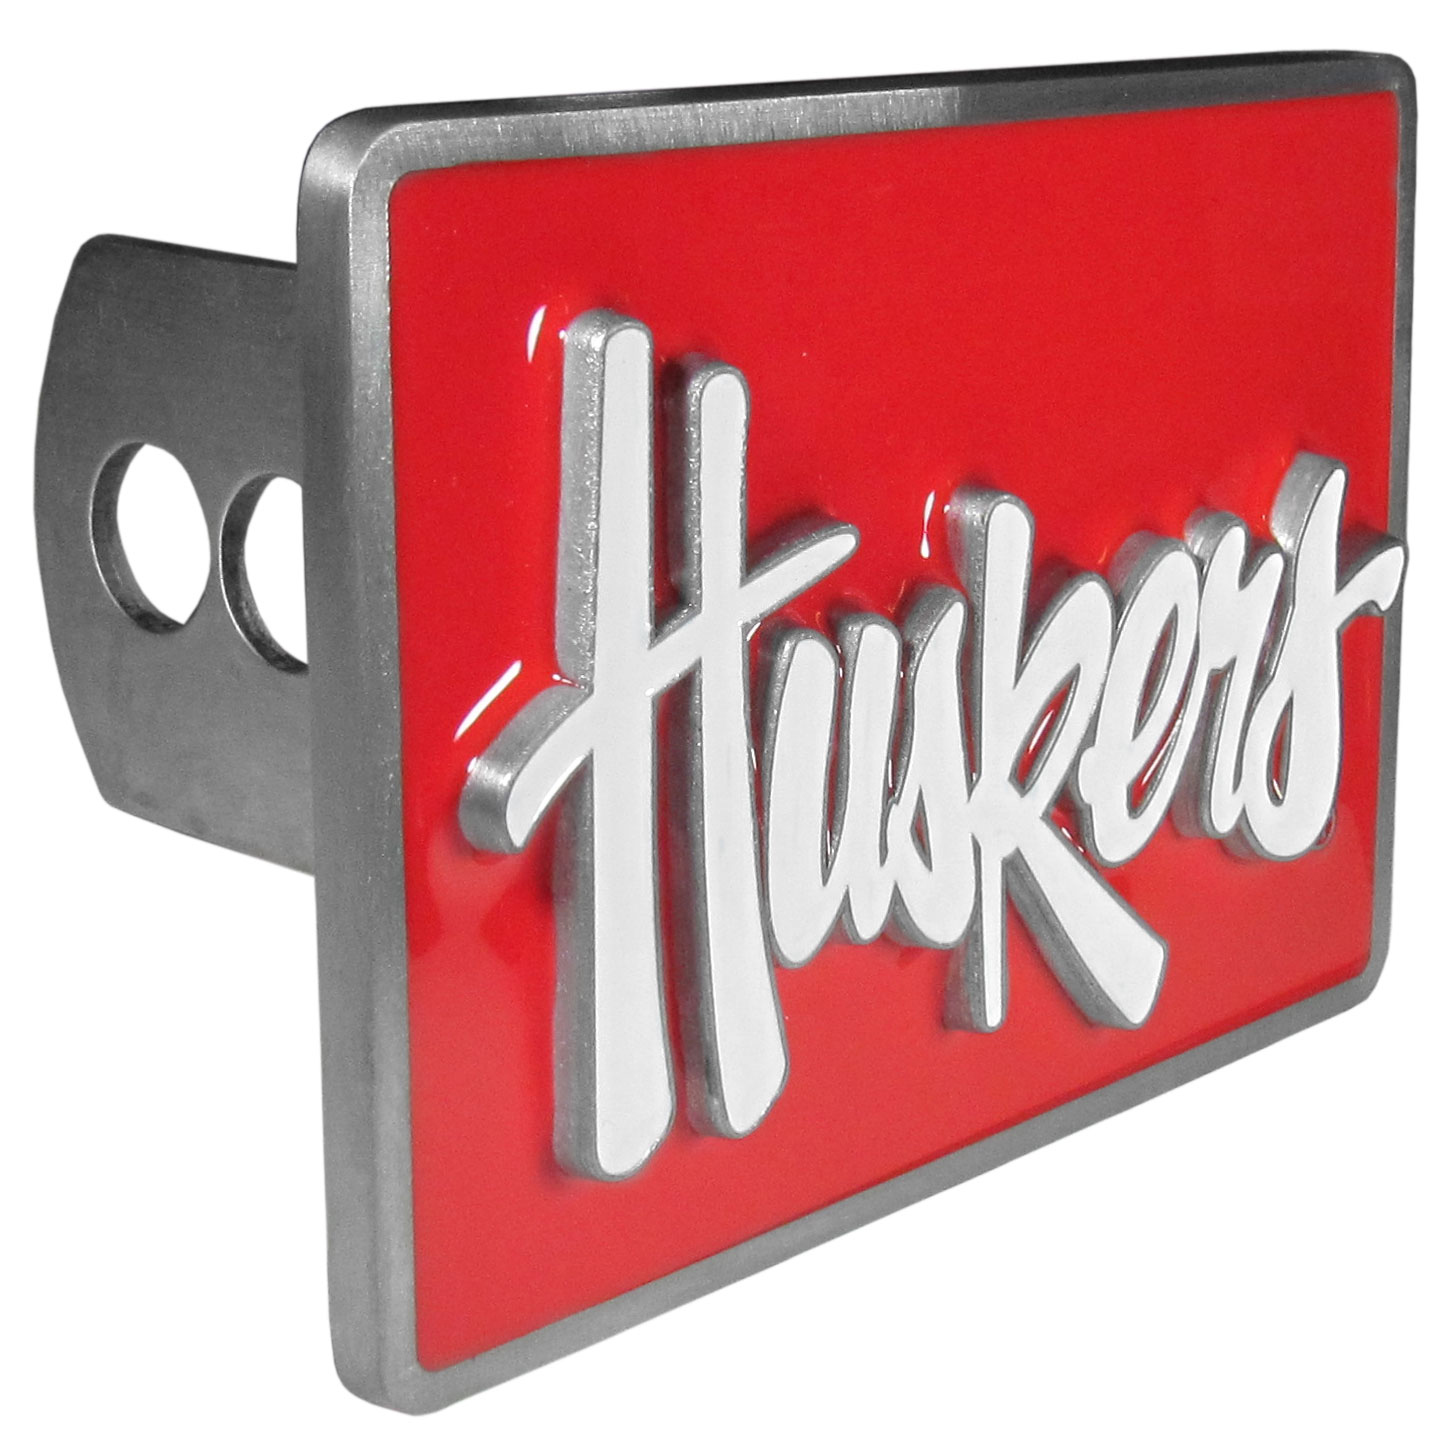 Nebraska Cornhuskers Hitch Cover Class II and Class III Metal Plugs - These are heavy-duty hitch plates made from fully cast zinc with raised details and the Nebraska Cornhuskers logo with enameled details. The hitch kit includes metal plugs for both the Class II and Class III hitch receivers. The screws and gaskets are included.